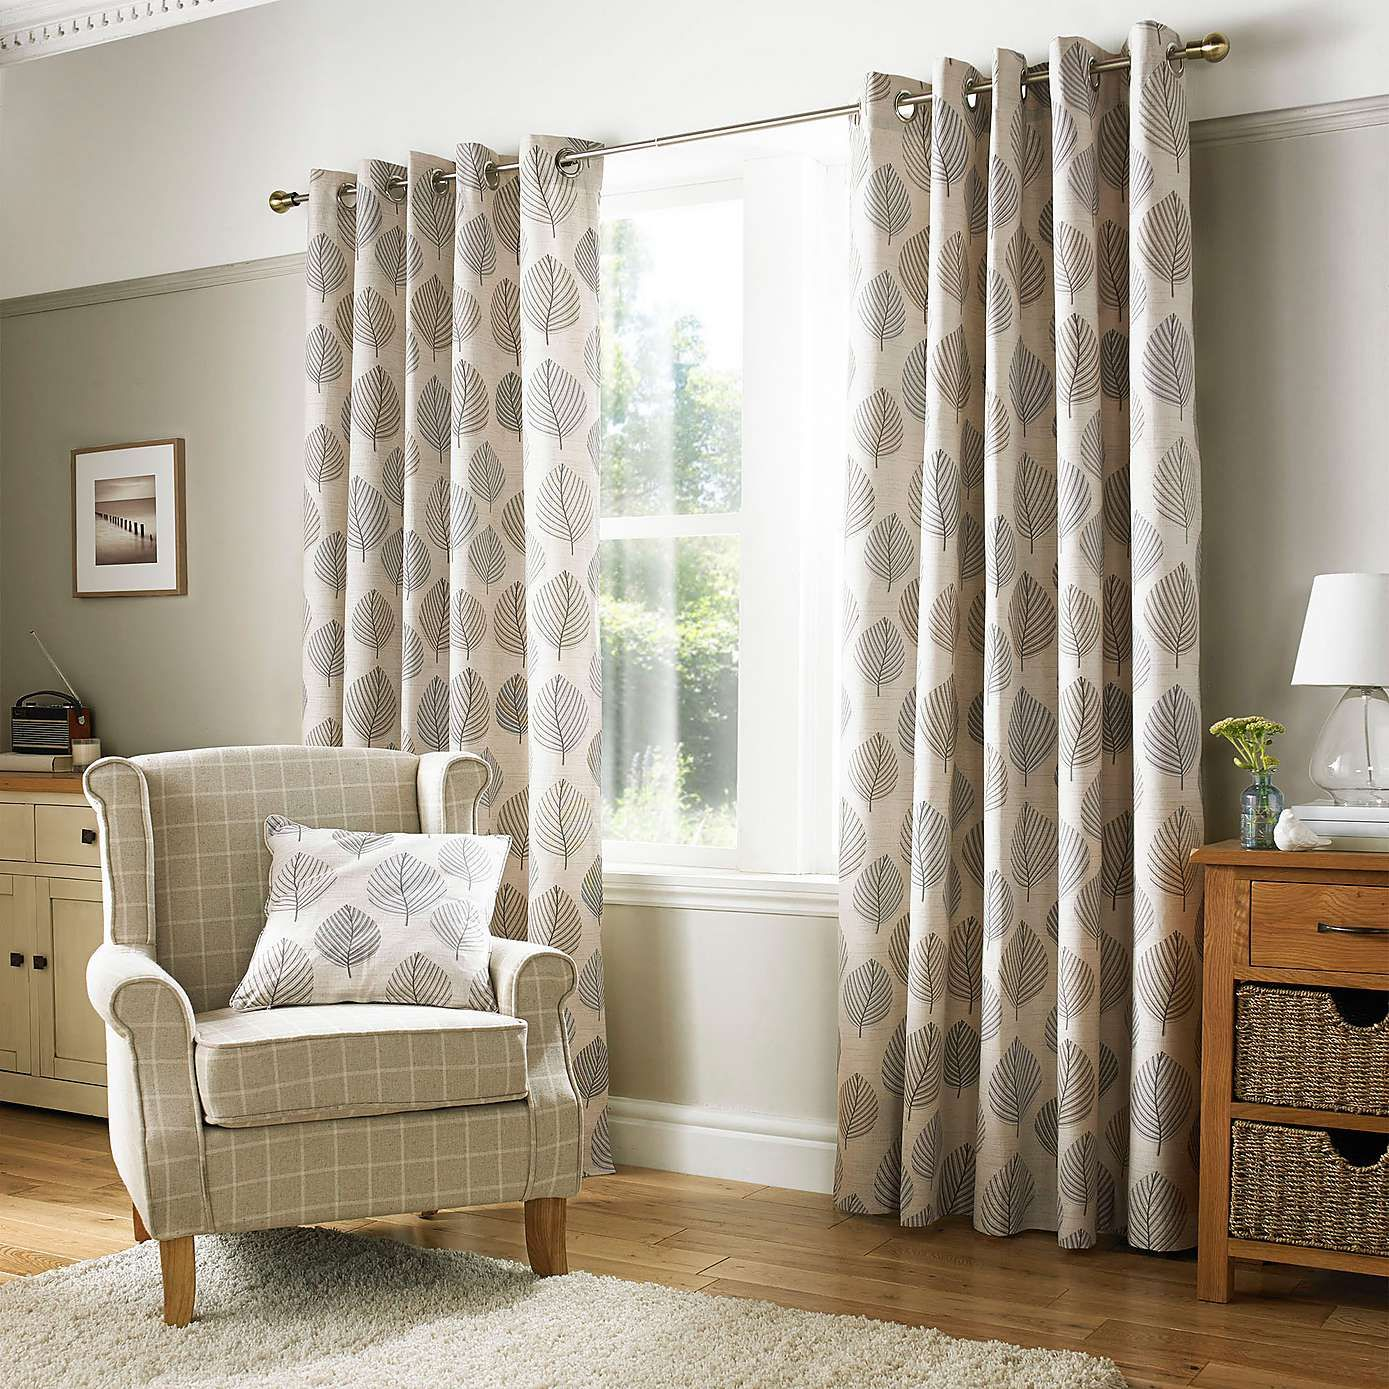 Pebble Regan Lined Eyelet Curtains Dunelm Decor Diy